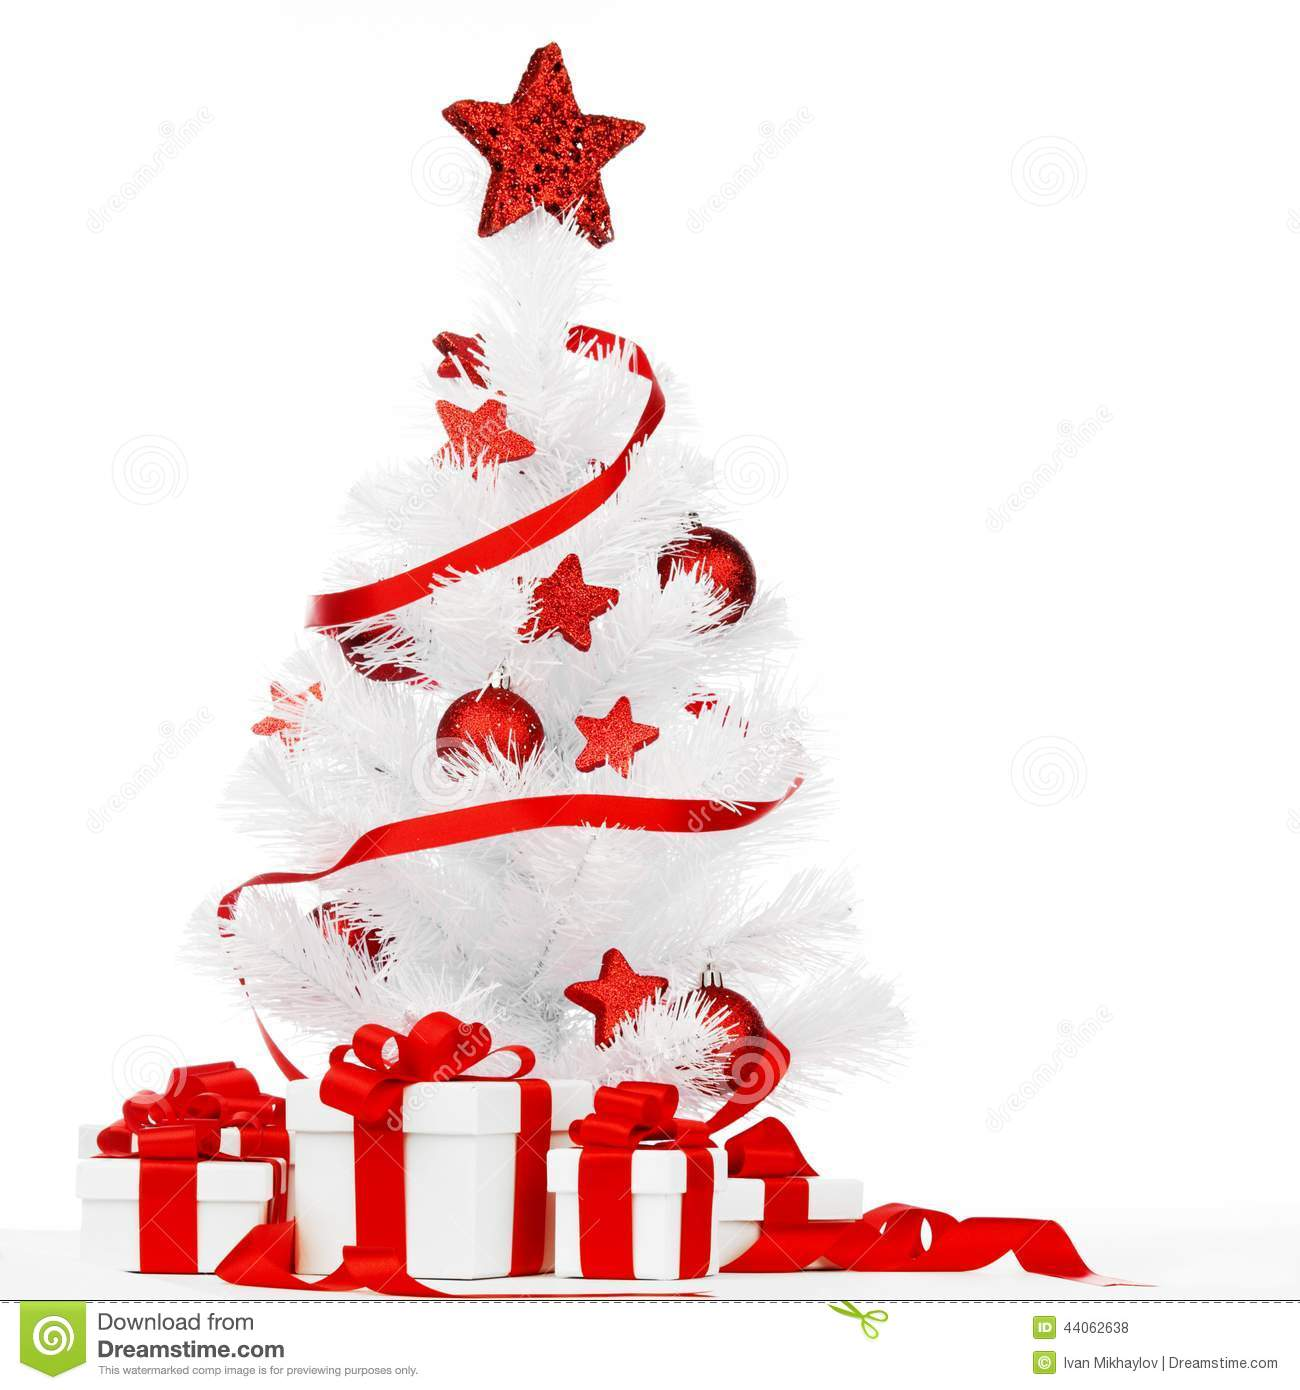 Christmas Tree With Red Decor Stock Photo - Image: 44062638